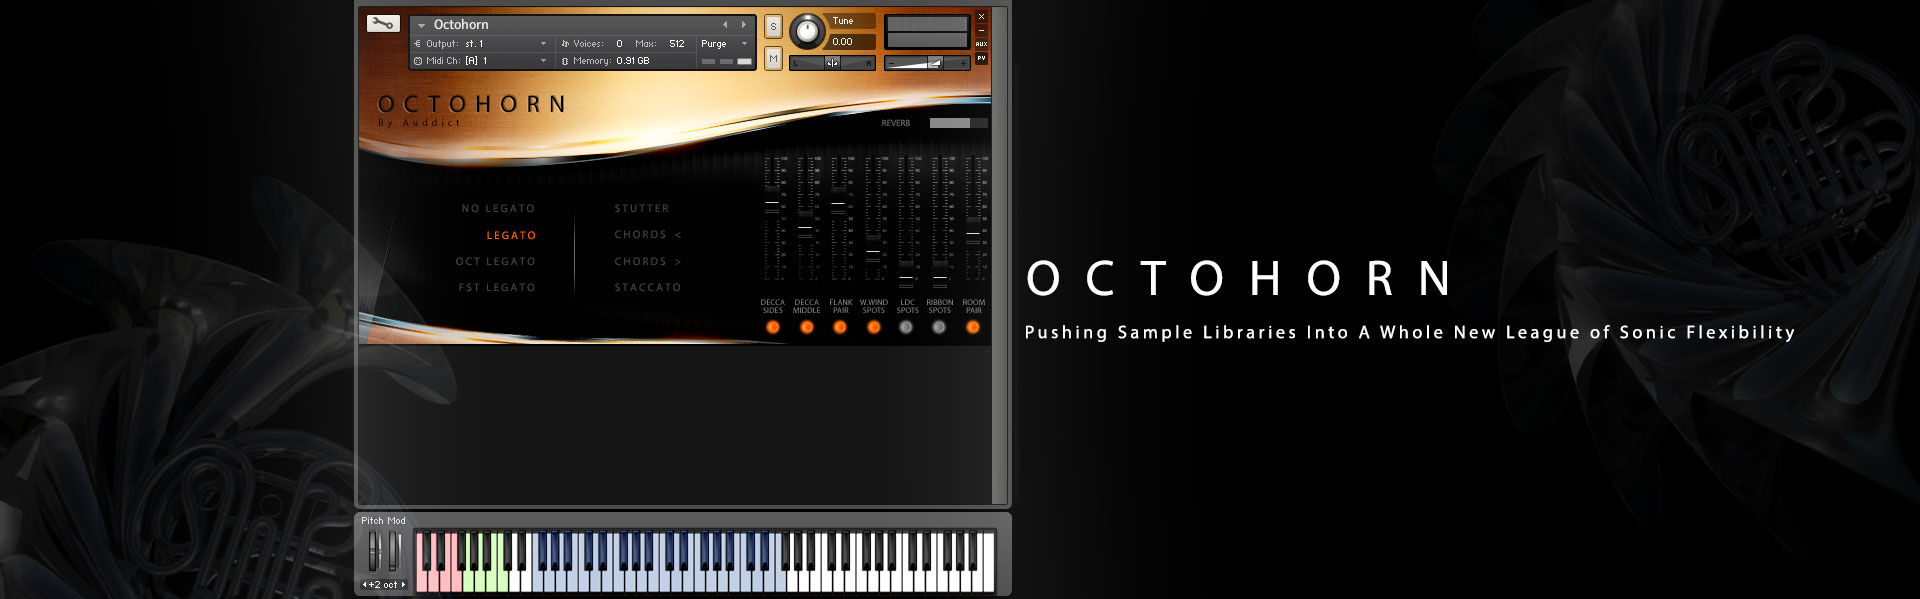 ceres vocal sample library for kontakt 4 and above with true legato